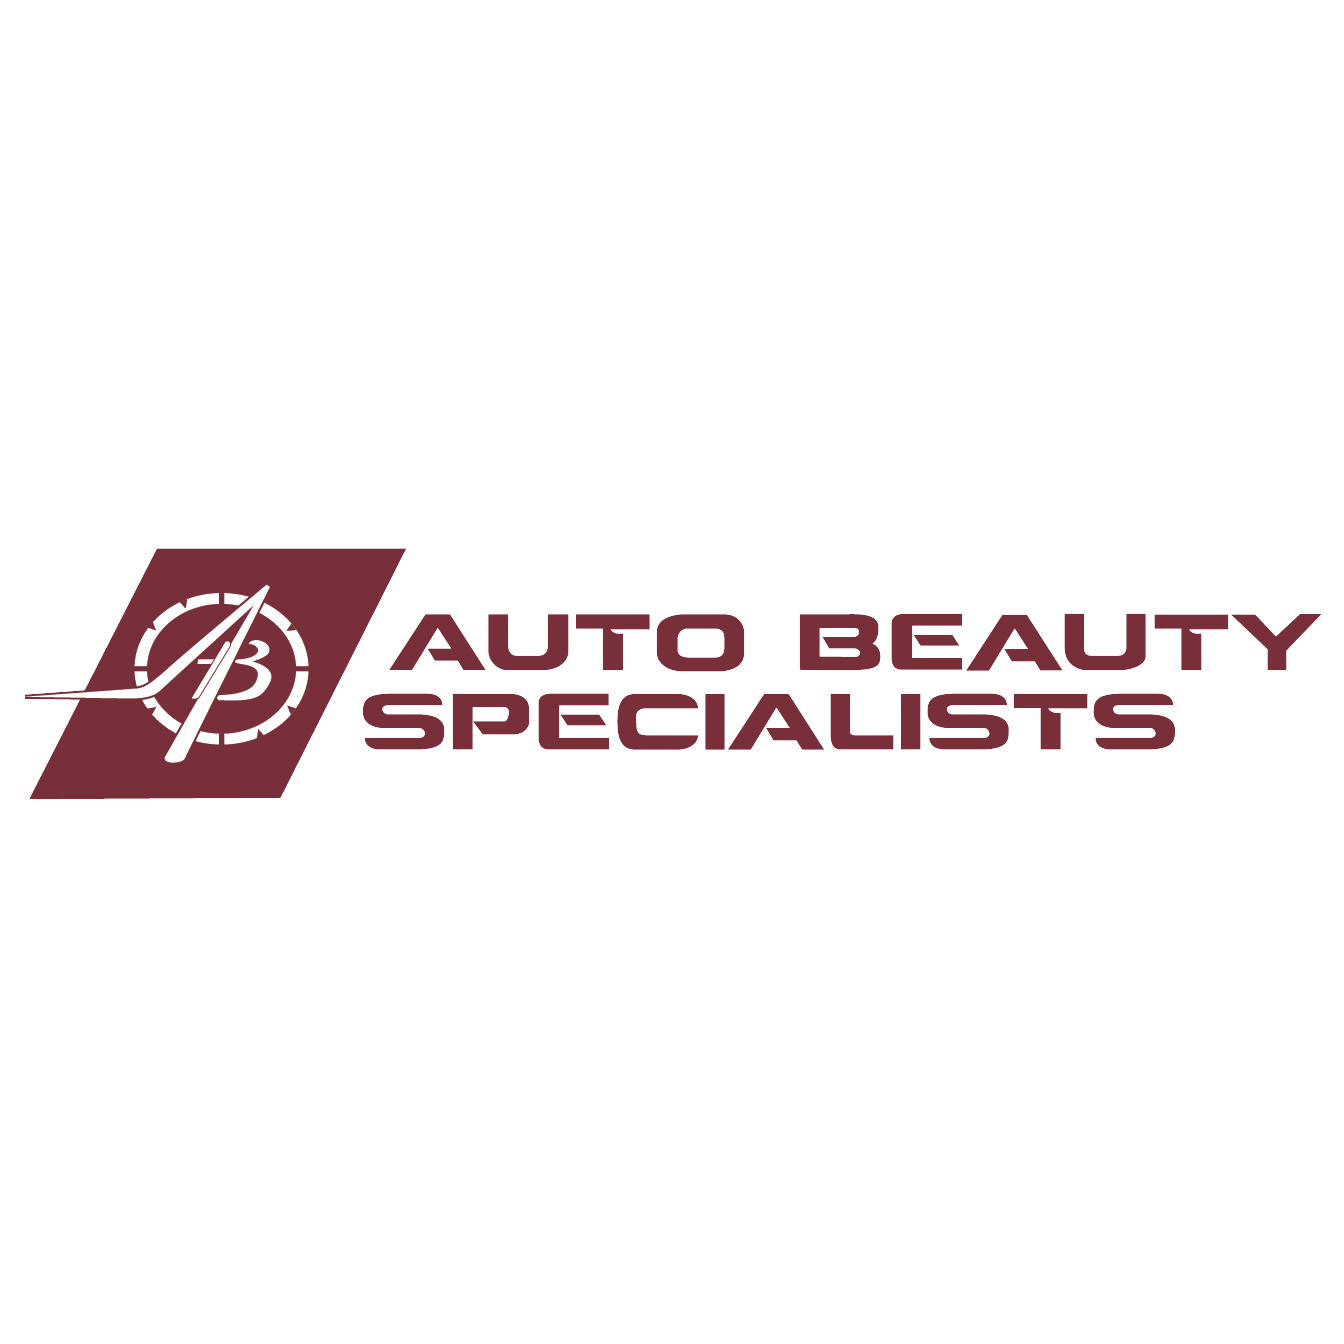 Auto Beauty Specialists